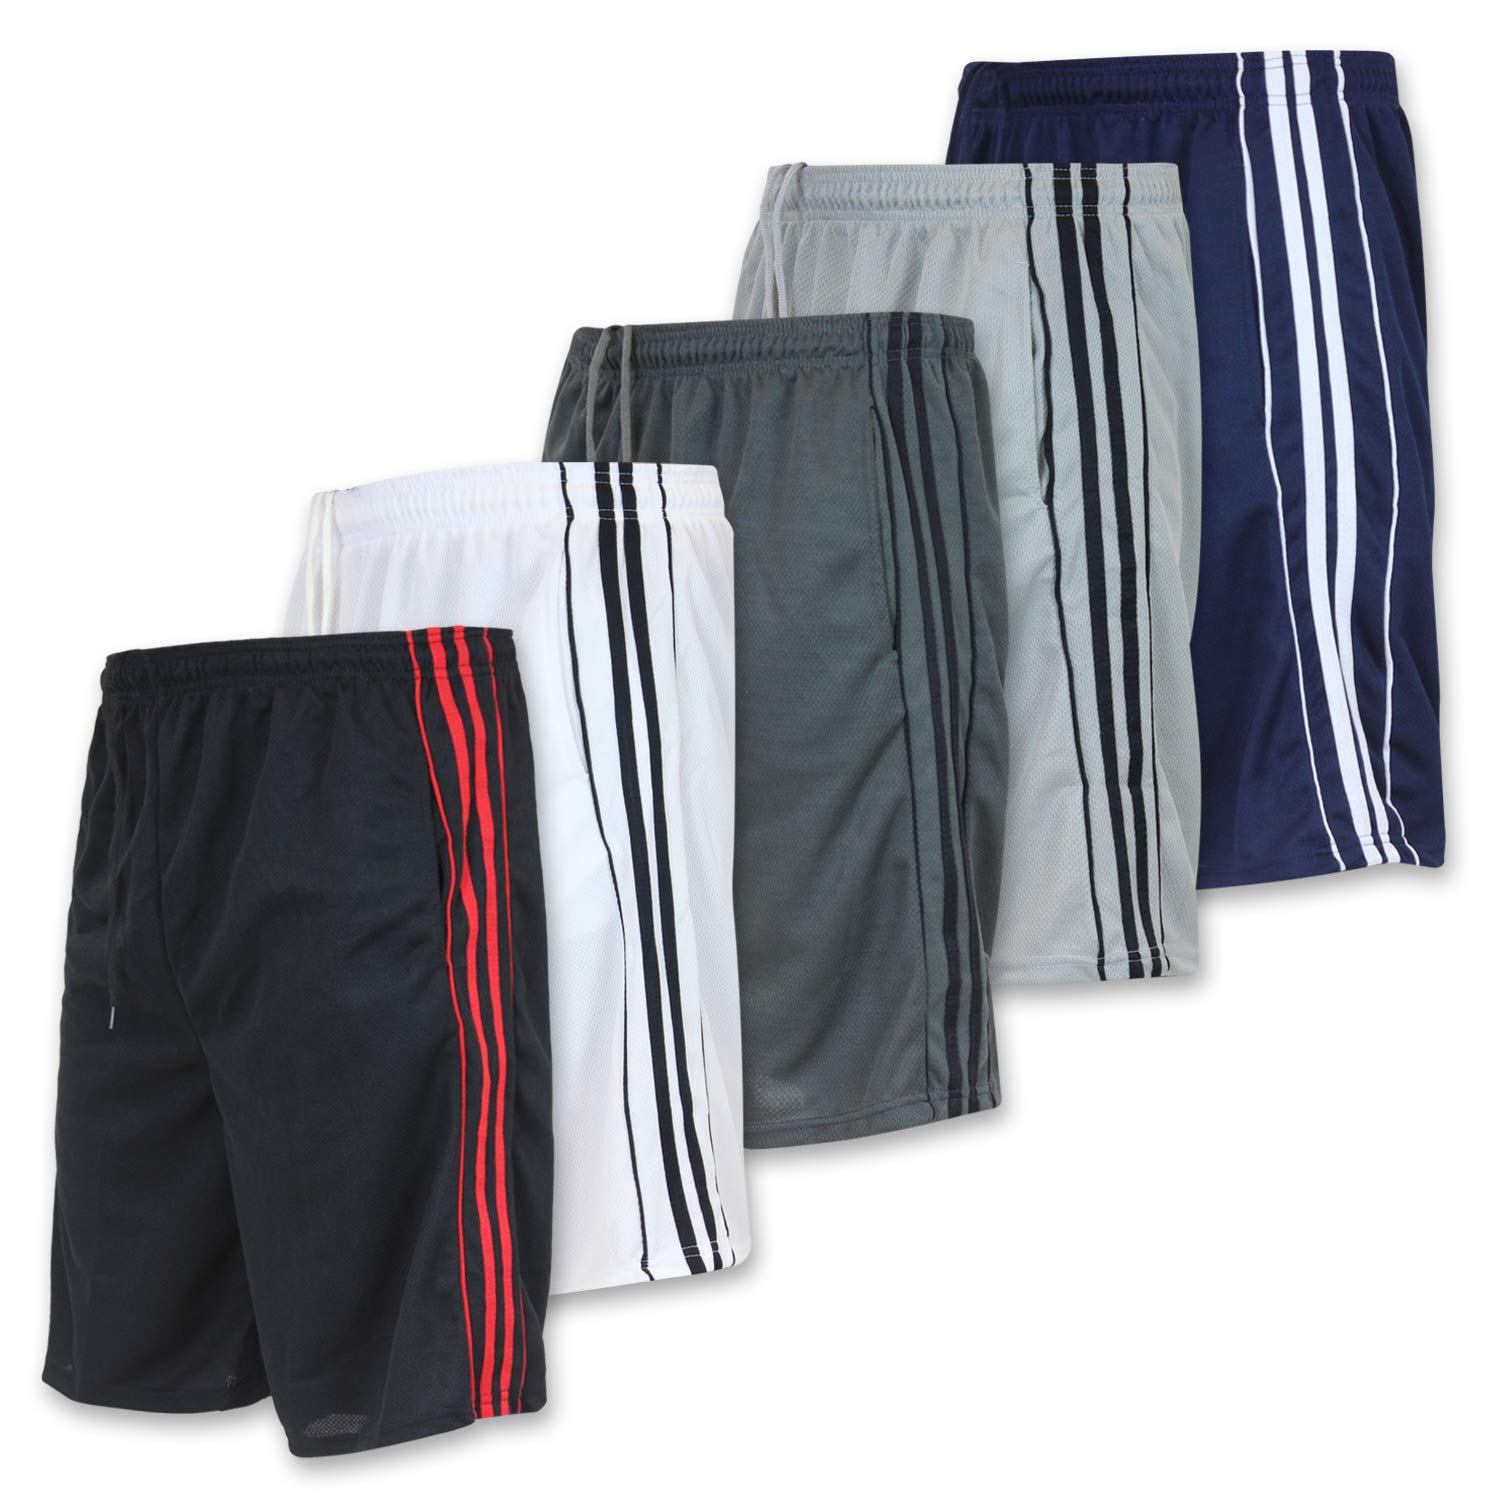 Men's Mesh Active Athletic Basketball Essentials Performance Gym Workout Clothes Sport Shorts Quick Dry - Set 6-5 Pack, S